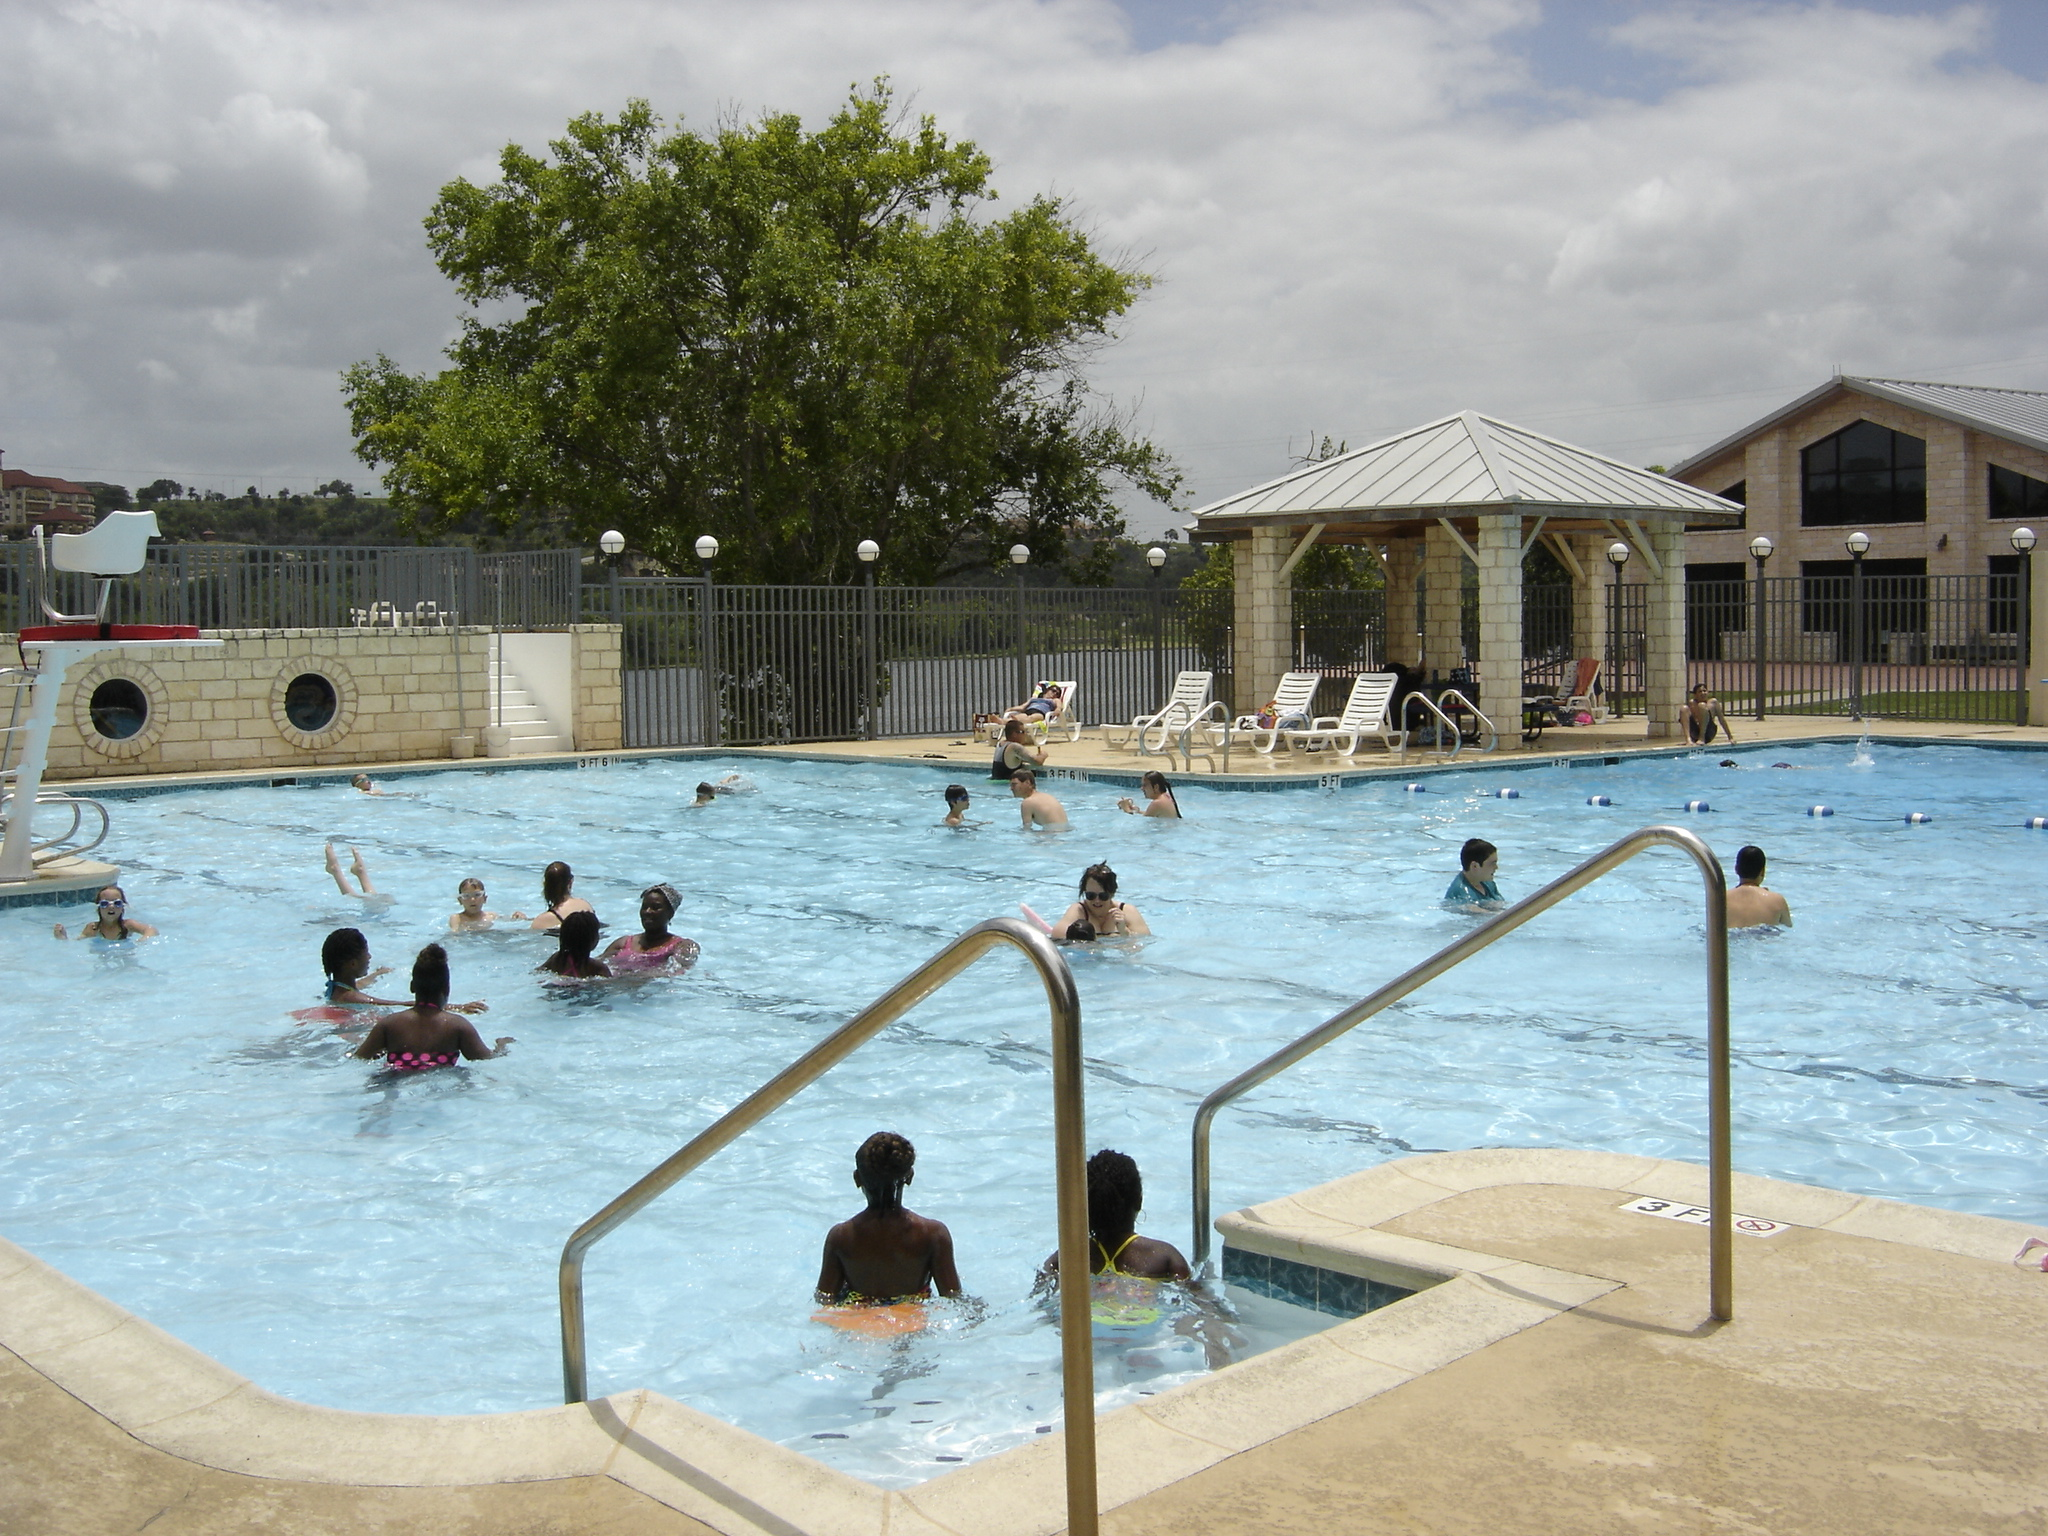 People swimming in the pool